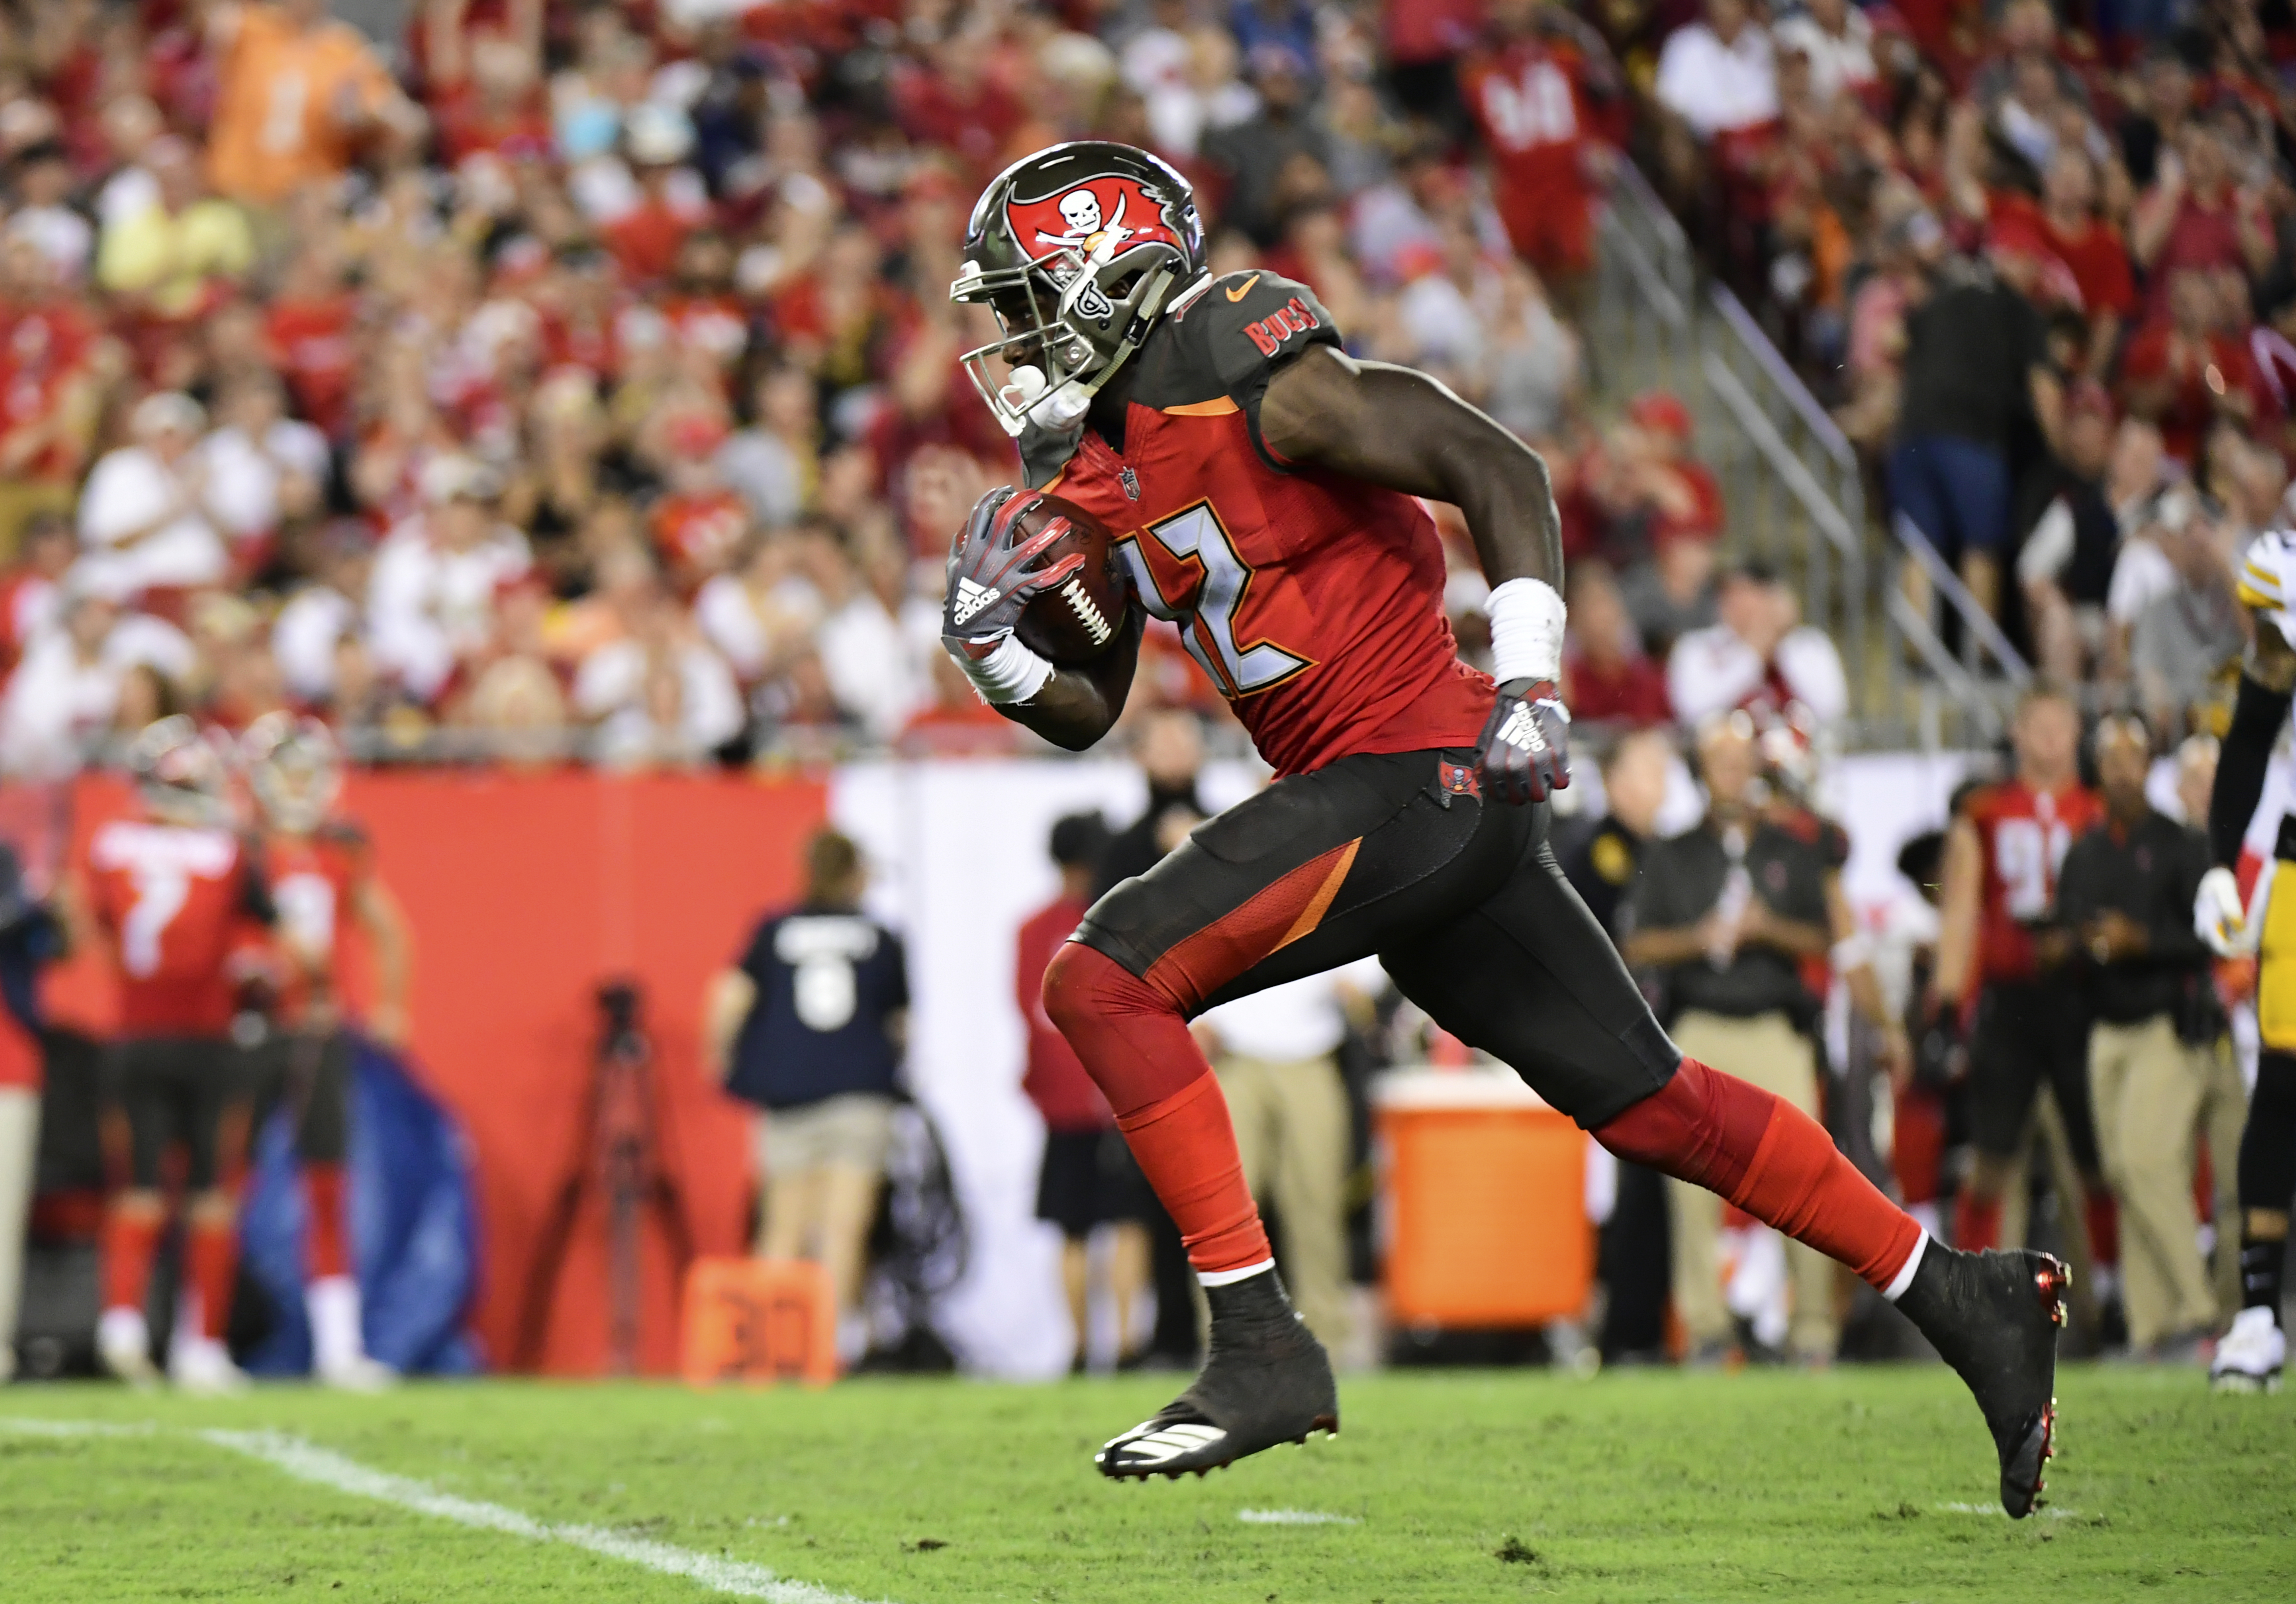 Chris Godwin #12 of the Tampa Bay Buccaneers runs the ball in the third quarter against the Pittsburgh Steelers on September 24, 2018 at Raymond James Stadium in Tampa, Florida.